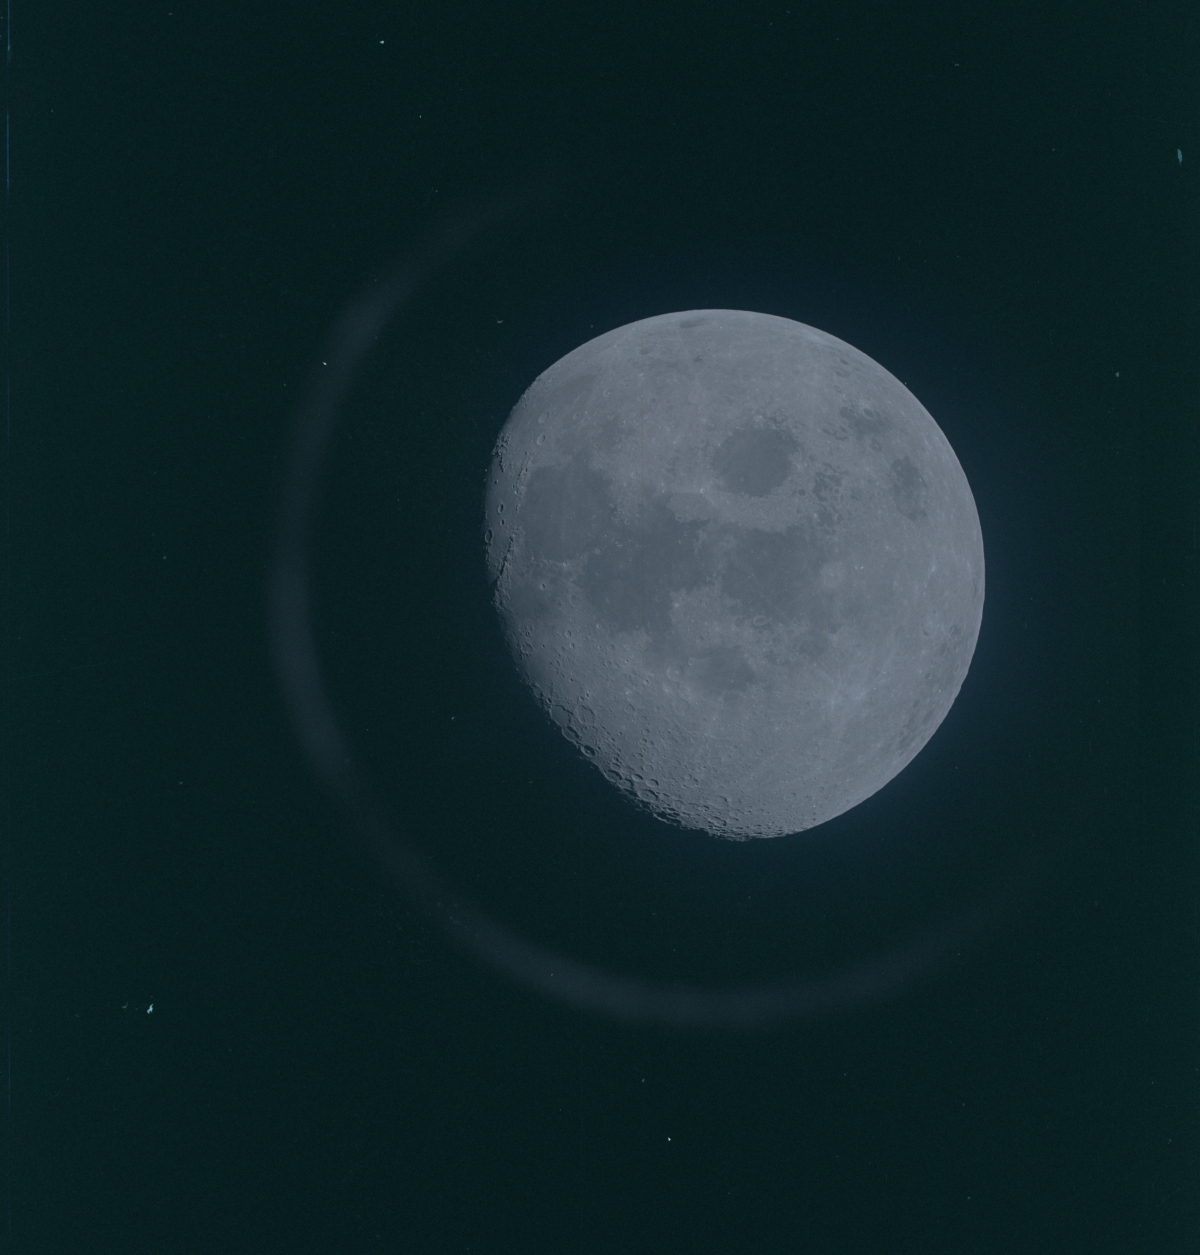 nasa archive photos of moon - photo #3